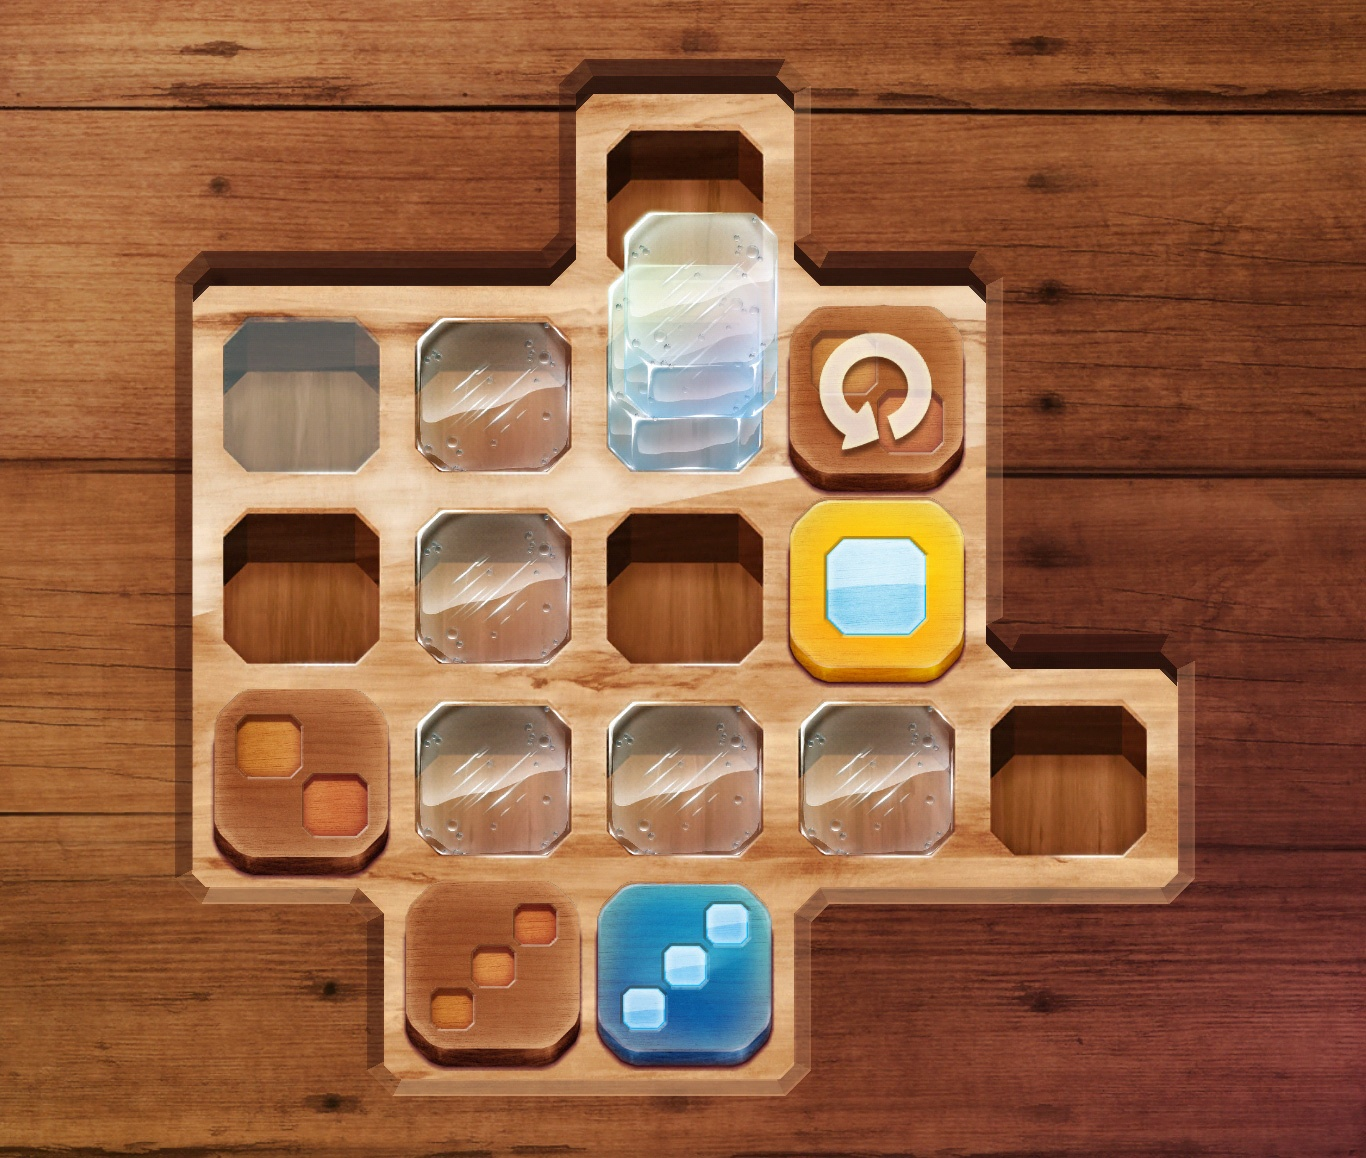 Android Game Puzzle Retreat